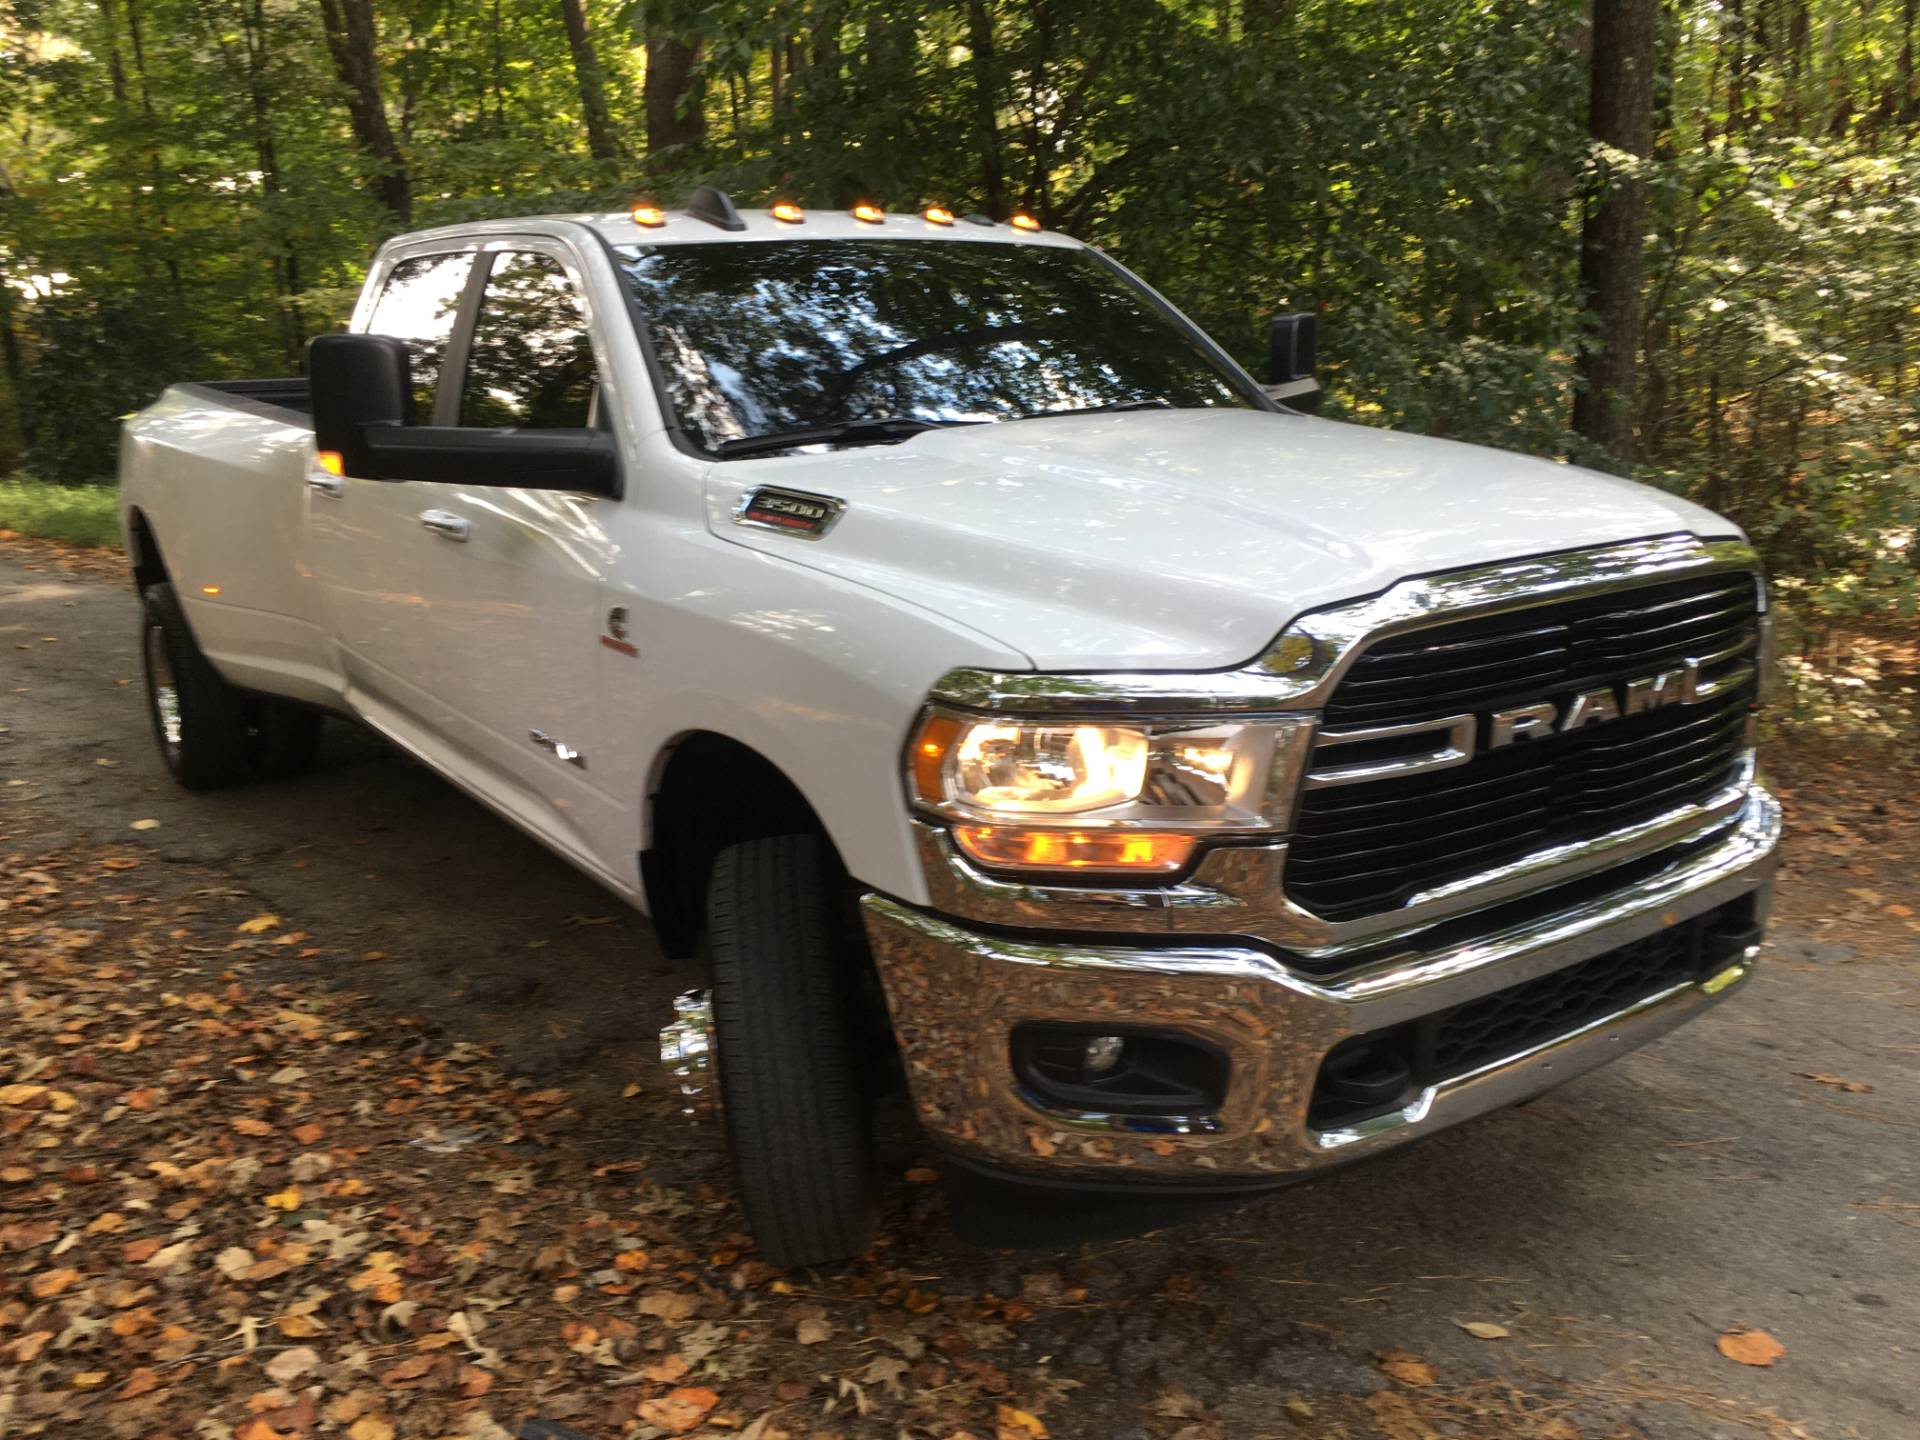 2019 DODGE RAM 3500 BIGHORN 4X4 in Woodstock, Georgia - Photo 6